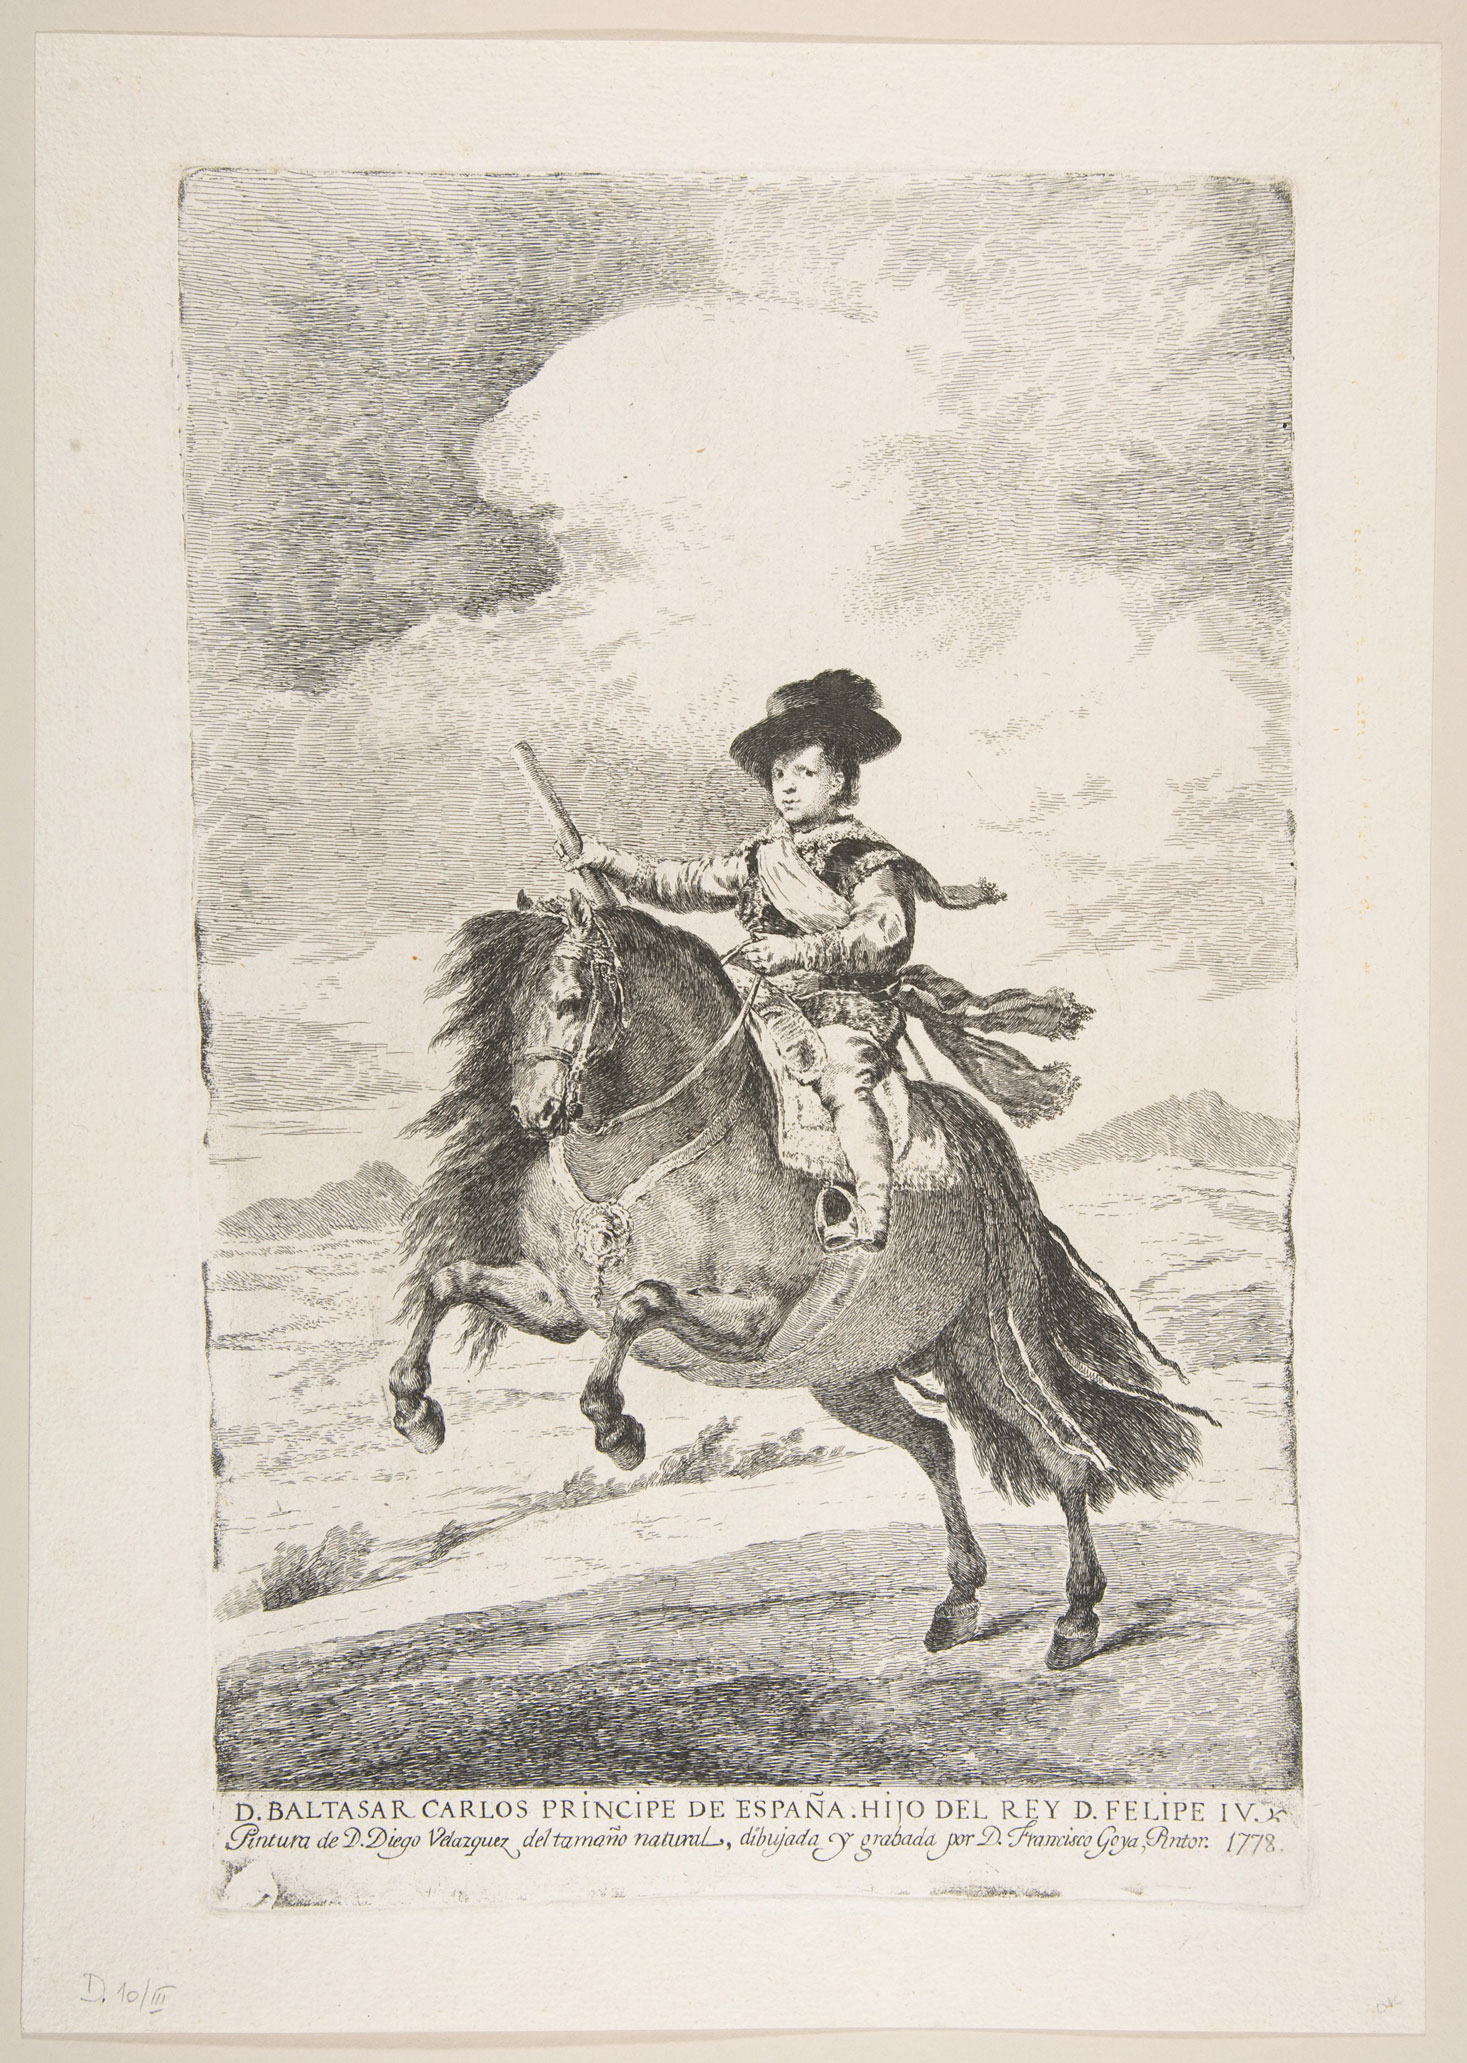 Goya, one of Spain's 4 most famous Artists - Goya's famous Etchings